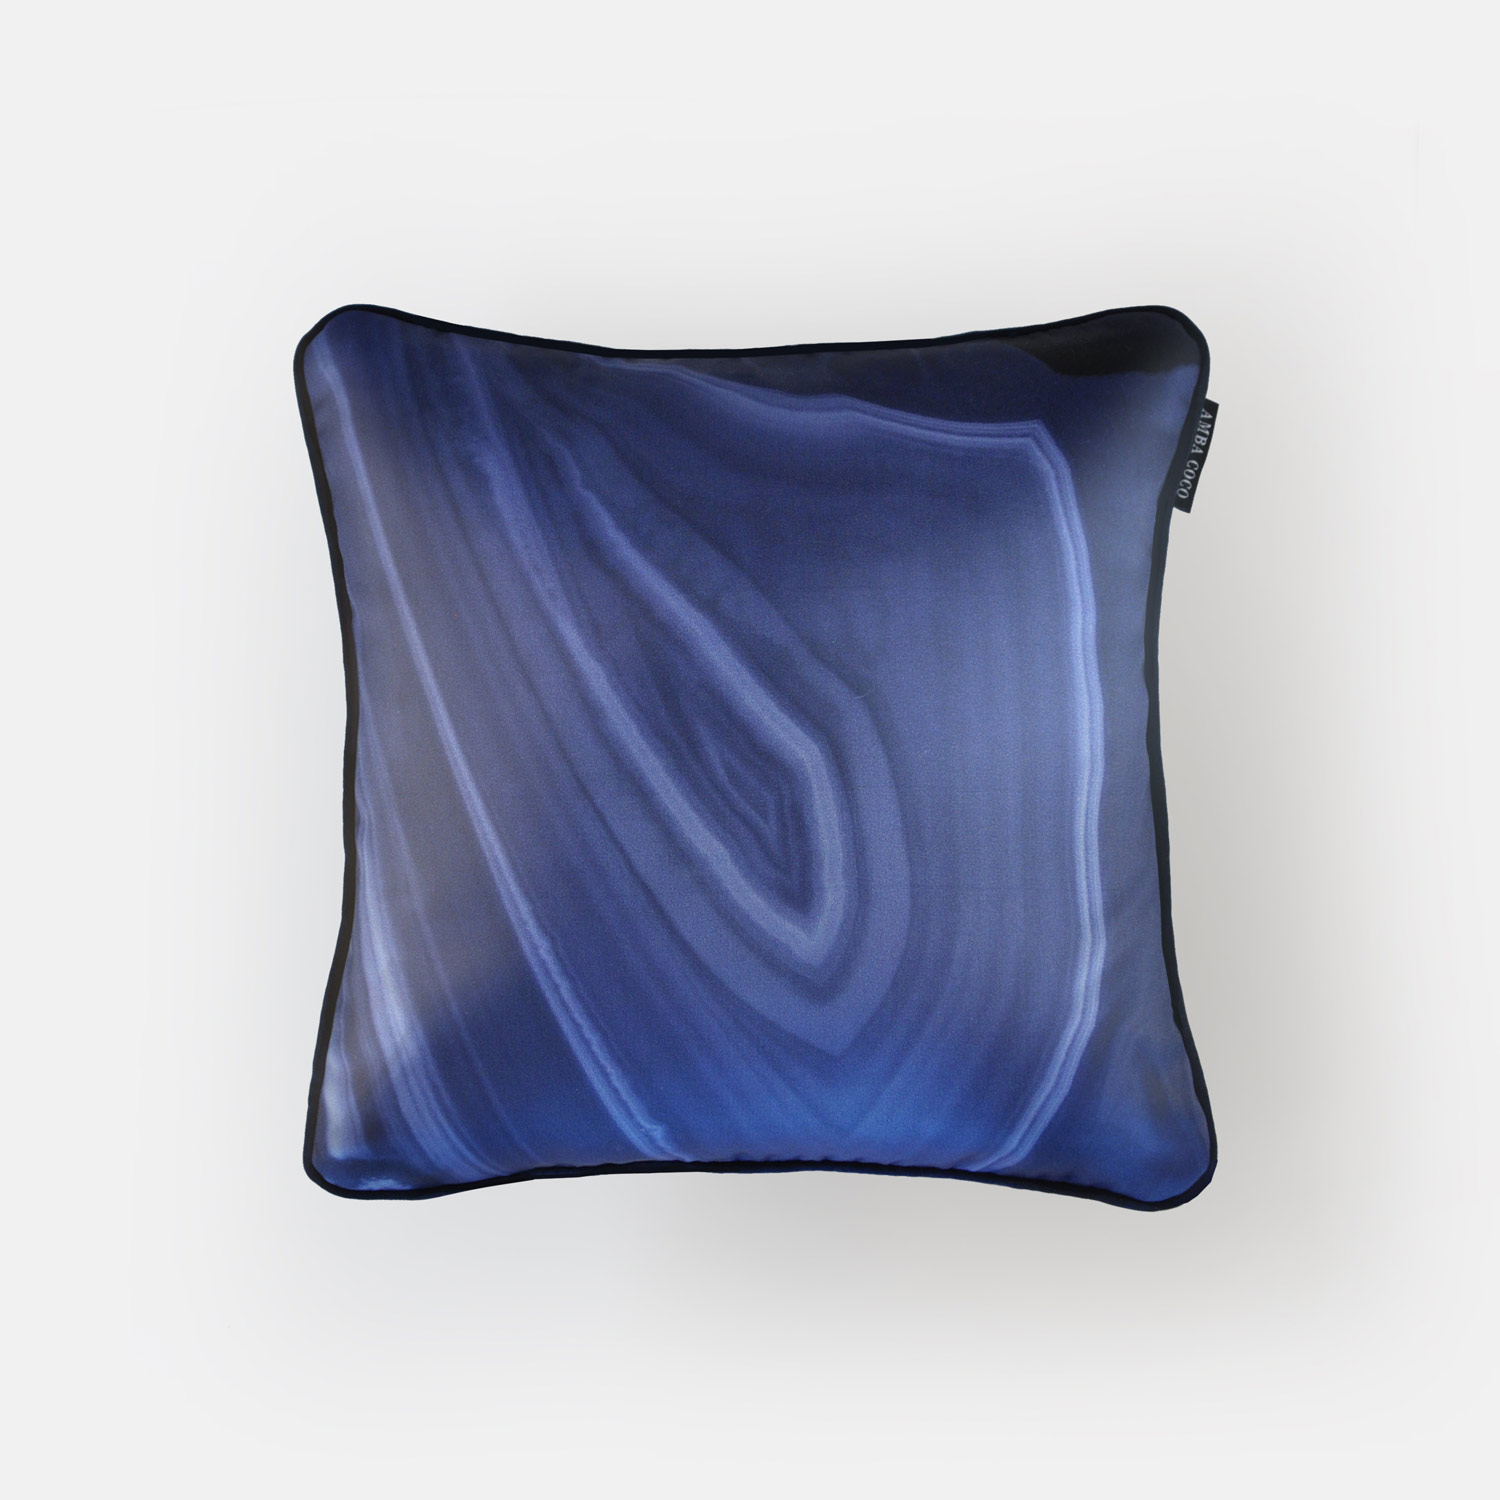 Brazilian agate silk throw pillow